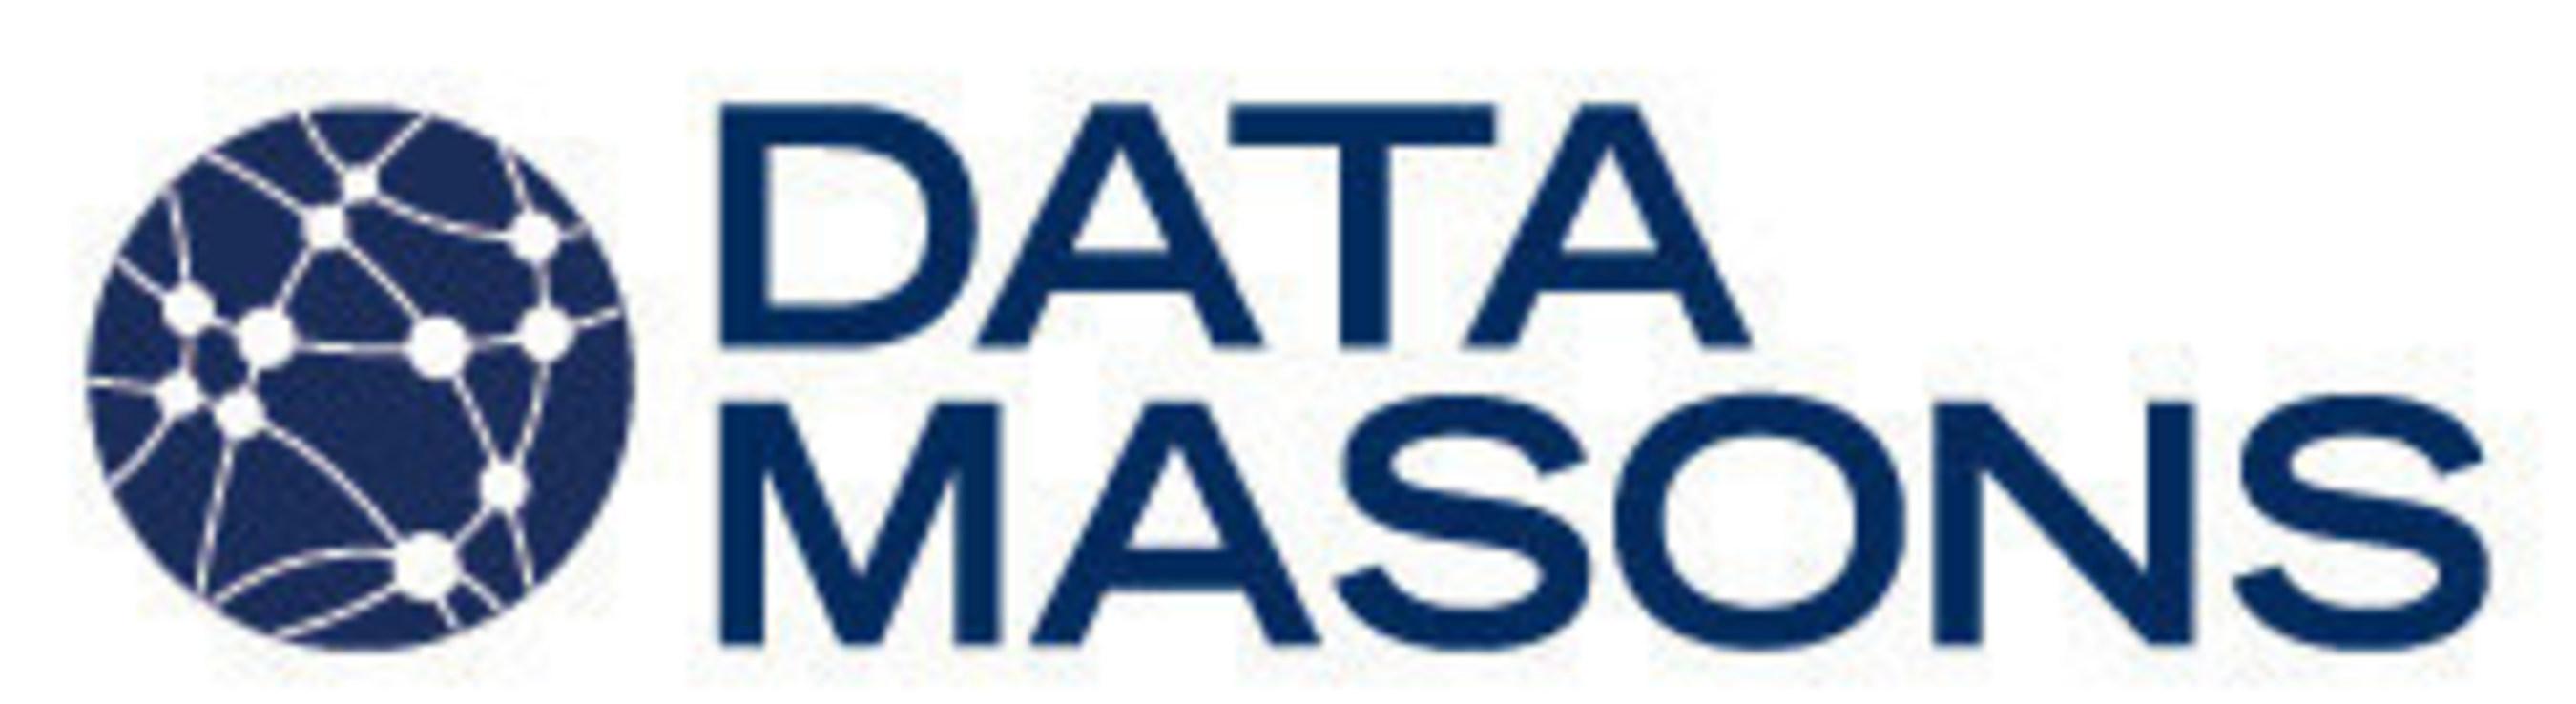 The Marco Company Automates Entire Supply Chain and Increases Cash Flow With EDI Solution From Data Masons